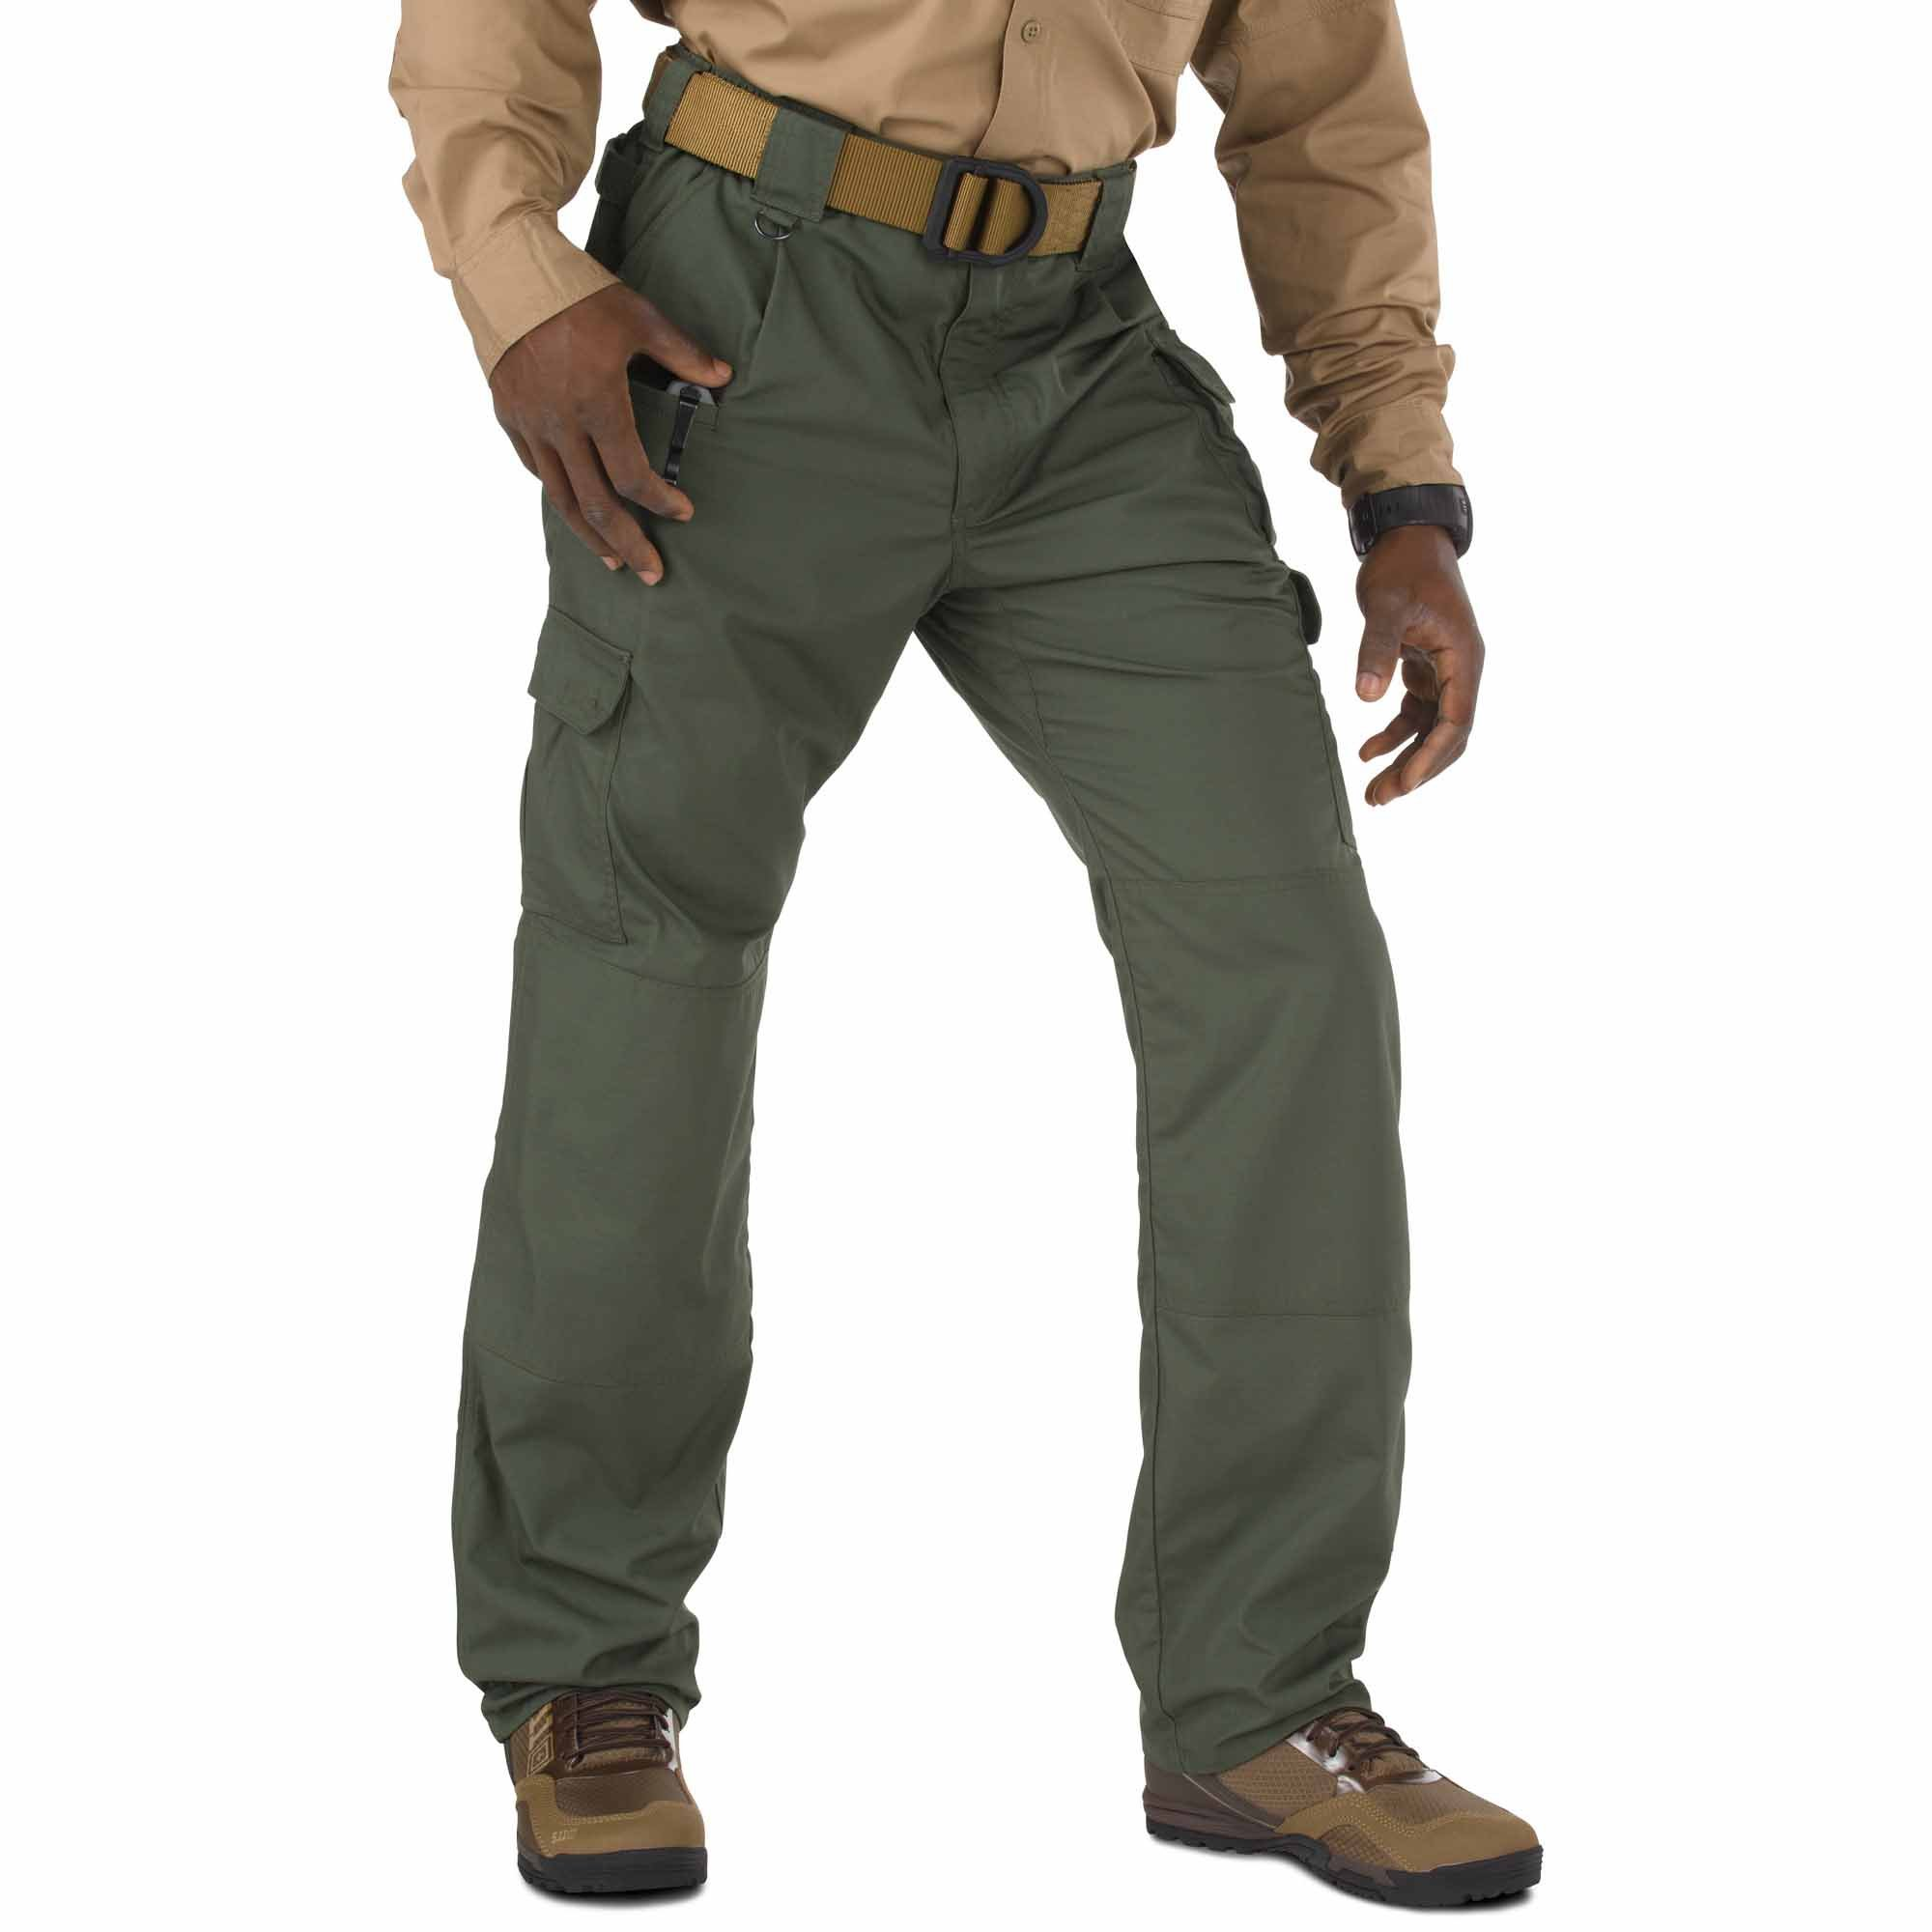 5.11 Men's Taclite PRO Tactical Pants, Style 74273, TDU Green, 40Wx30L by 5.11